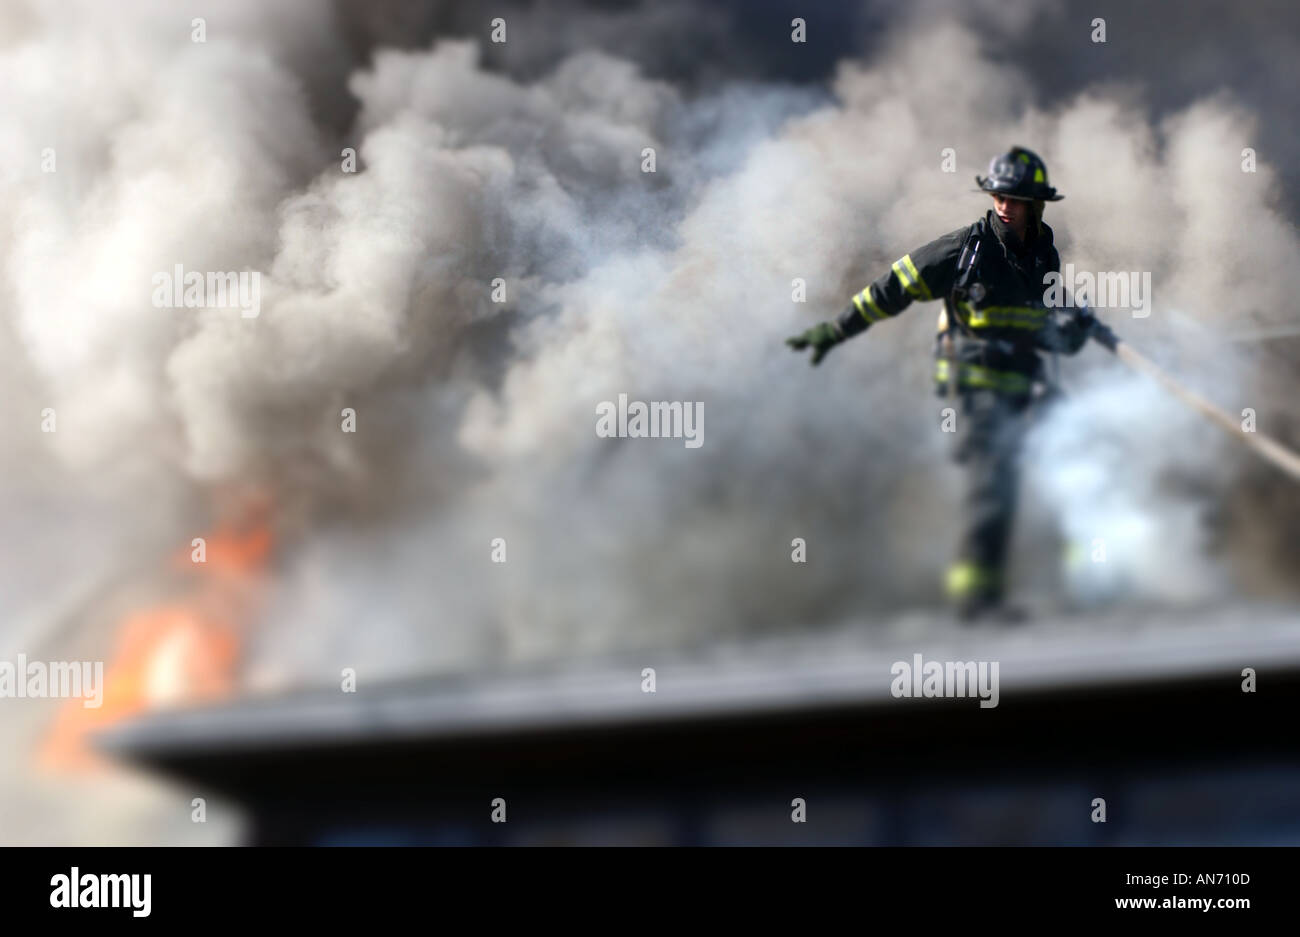 Firefighter on a roof fighting a fire Stock Photo